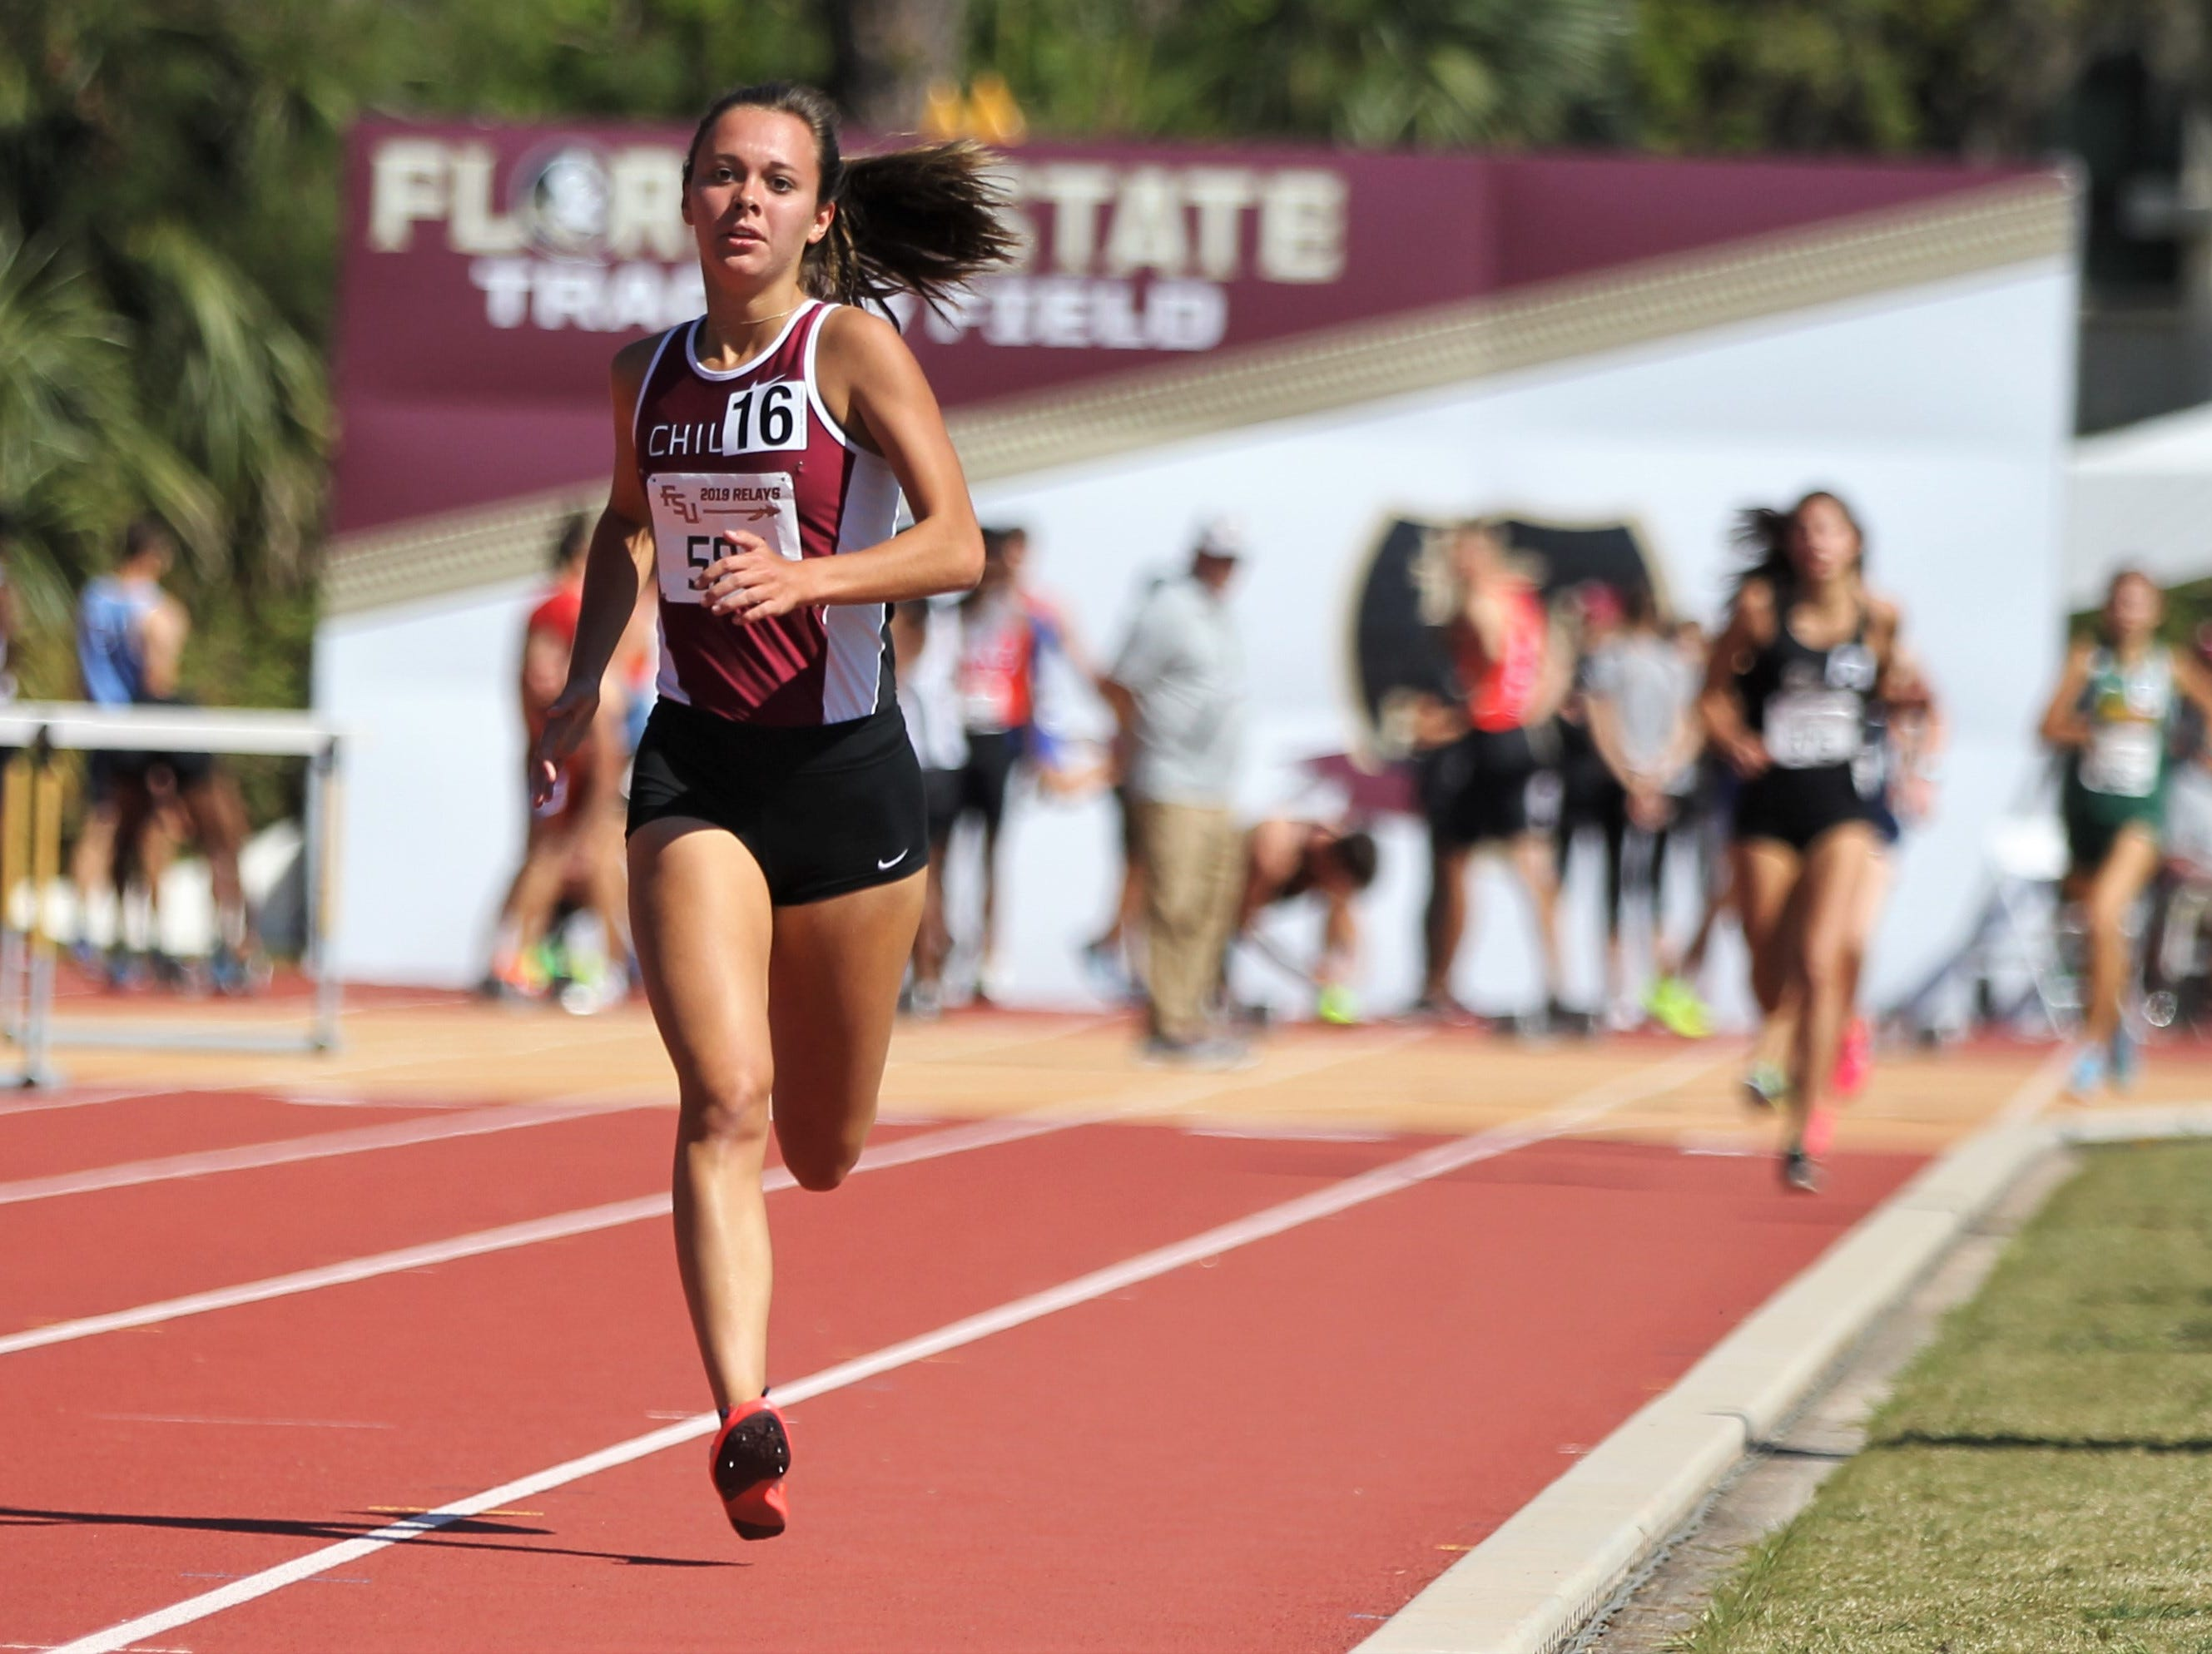 Chiles senior Olivia Miller runs the 1600 during the 40th annual FSU Relays at Mike Long Track on Saturday, March 23, 2019.